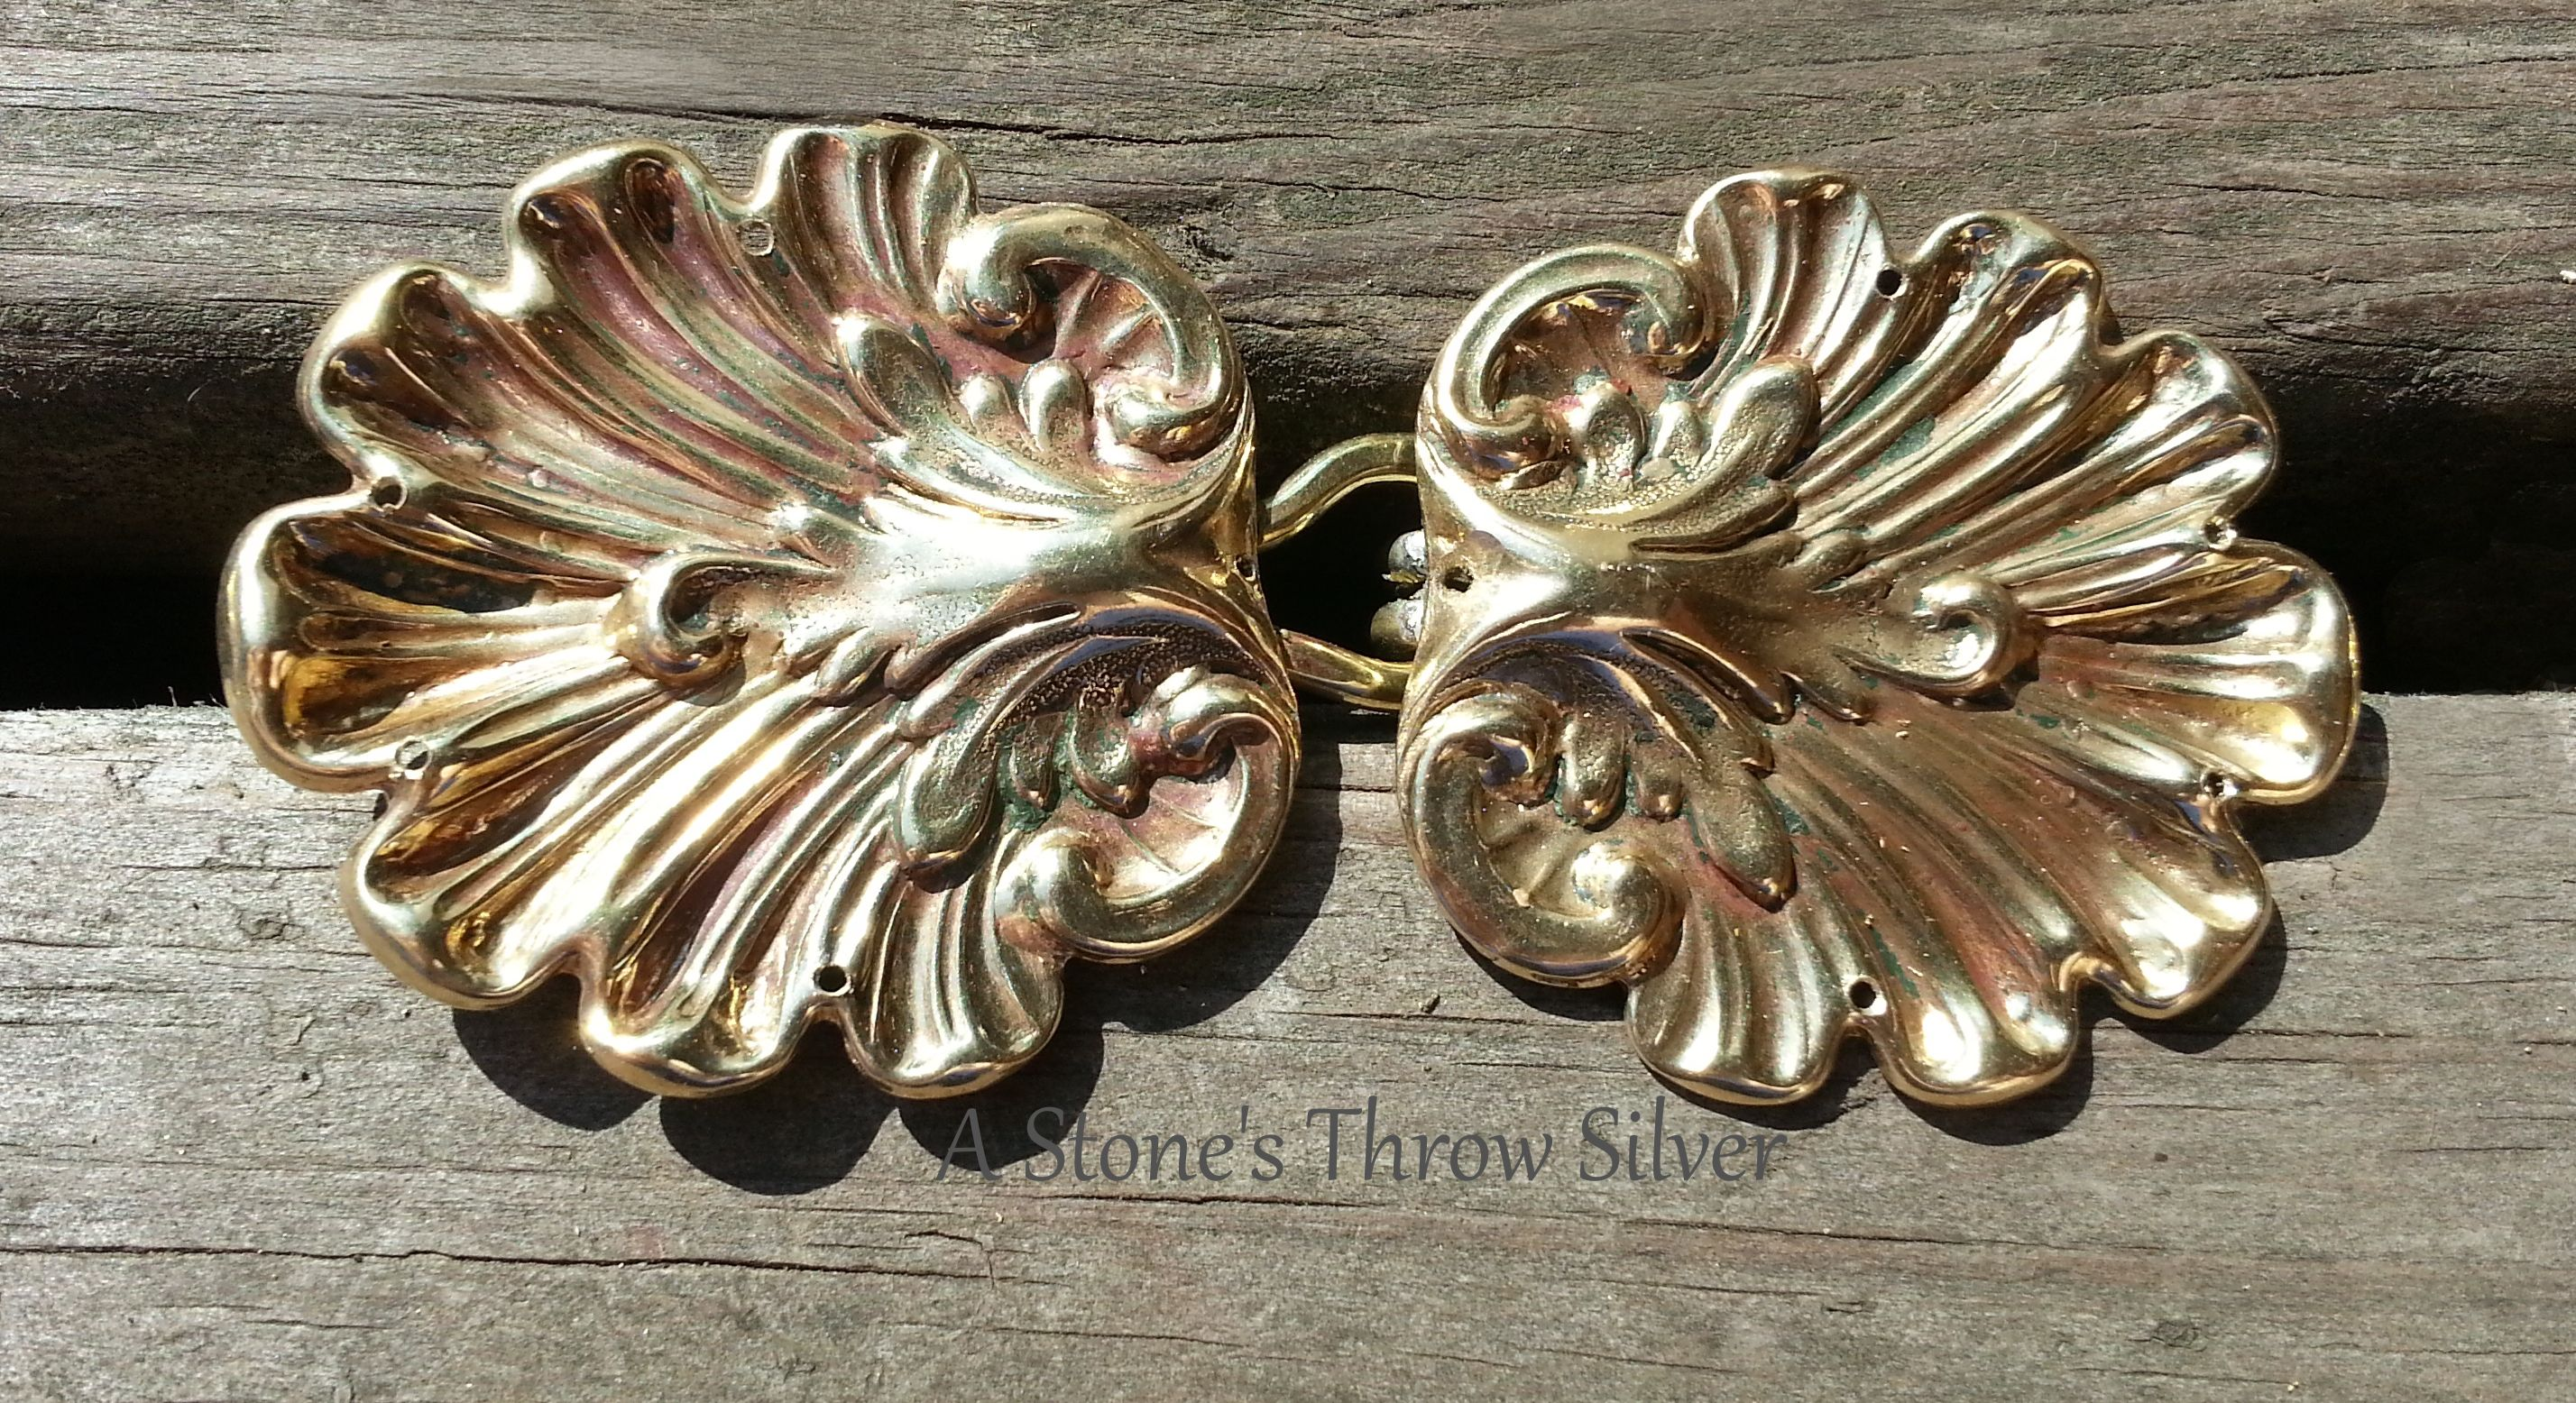 Shell and Acanthus Cloak Clasps, $35. These shell-shaped medium weight clasps are solid brass, have five stitching holes on each shell, and have acanthus leaf accents. Designed to be a secure closure for every day wear, LARPing, Highland games, Renaissance events, rituals, or any other place that you would wear your favorite cloak.